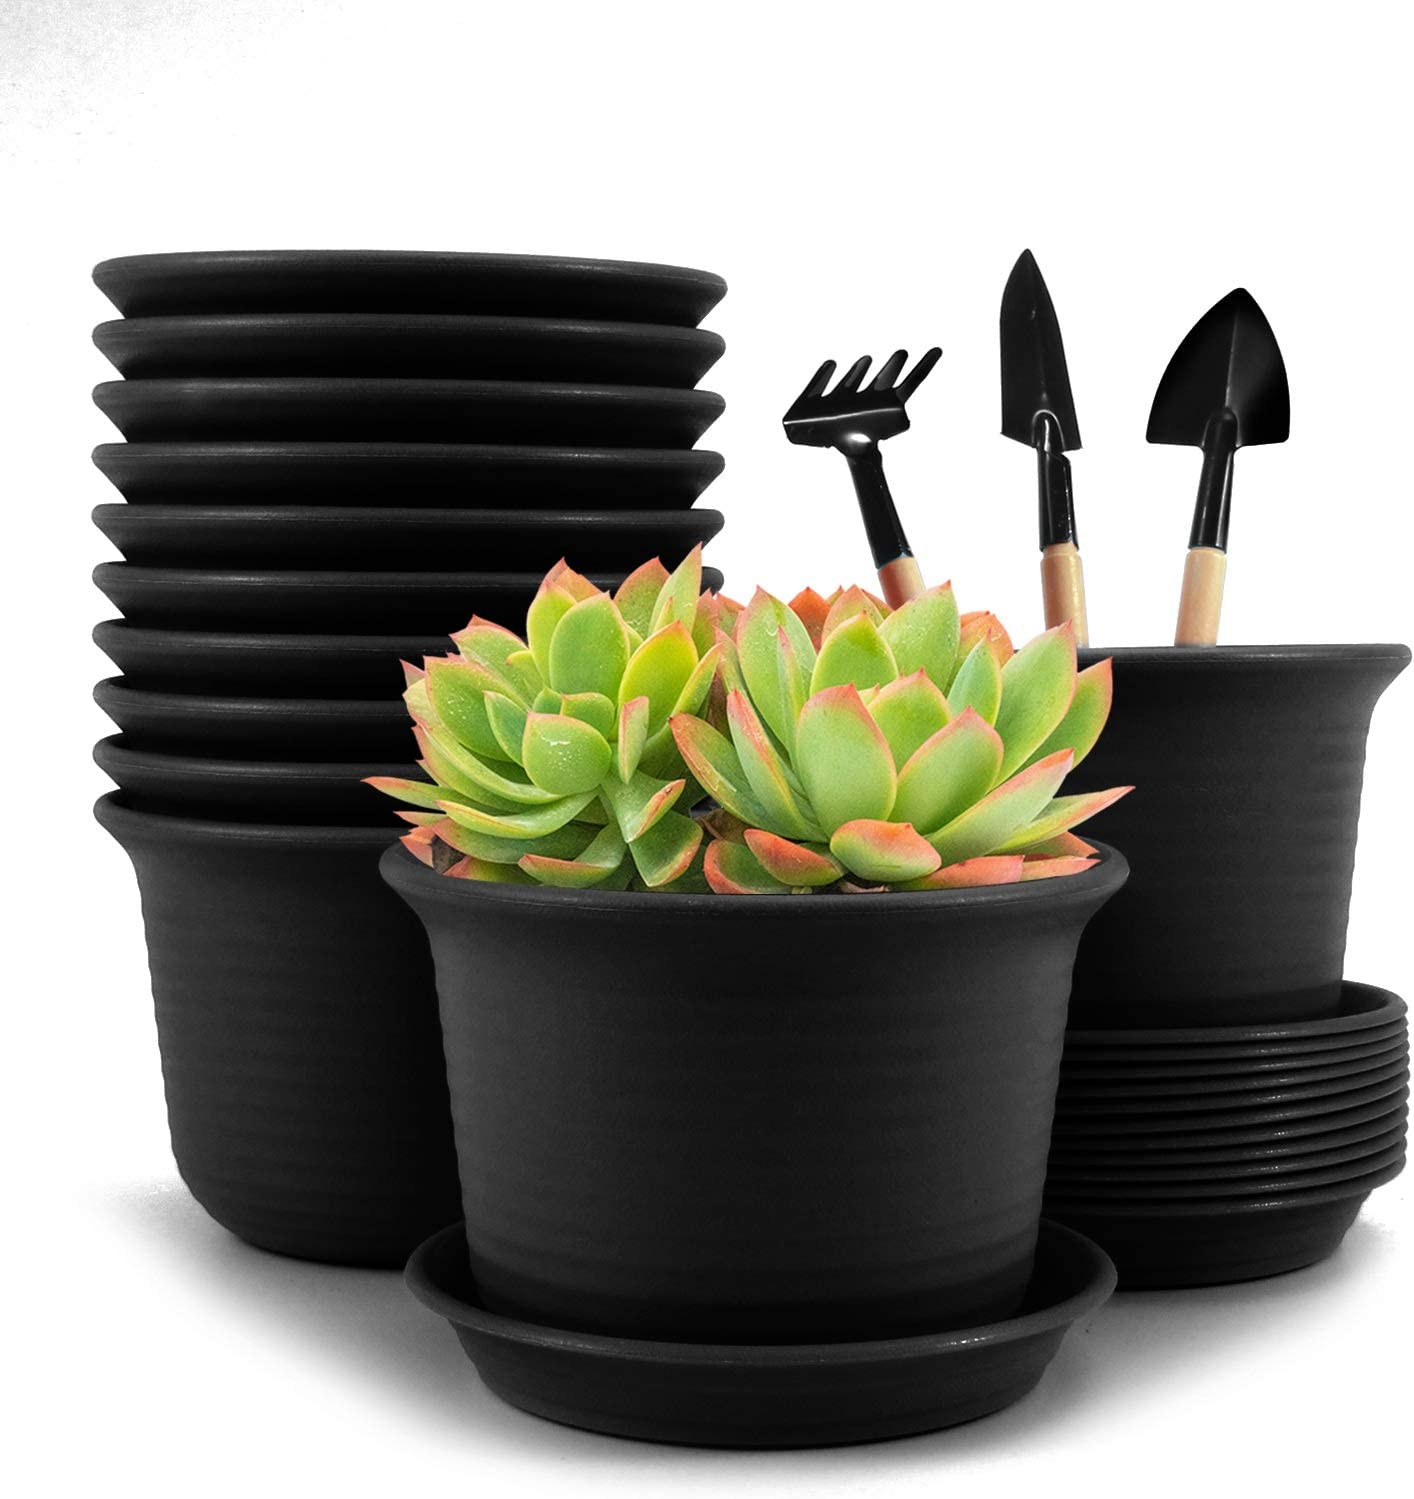 Baodan Plastic Flower Plant Pots, 6 inch Plant Containers with Drainage Holes and Trays, Decorative Round Seedling Nursery Planters for Indoor Outdoor, Set of 12- Plants Not Included (Black)